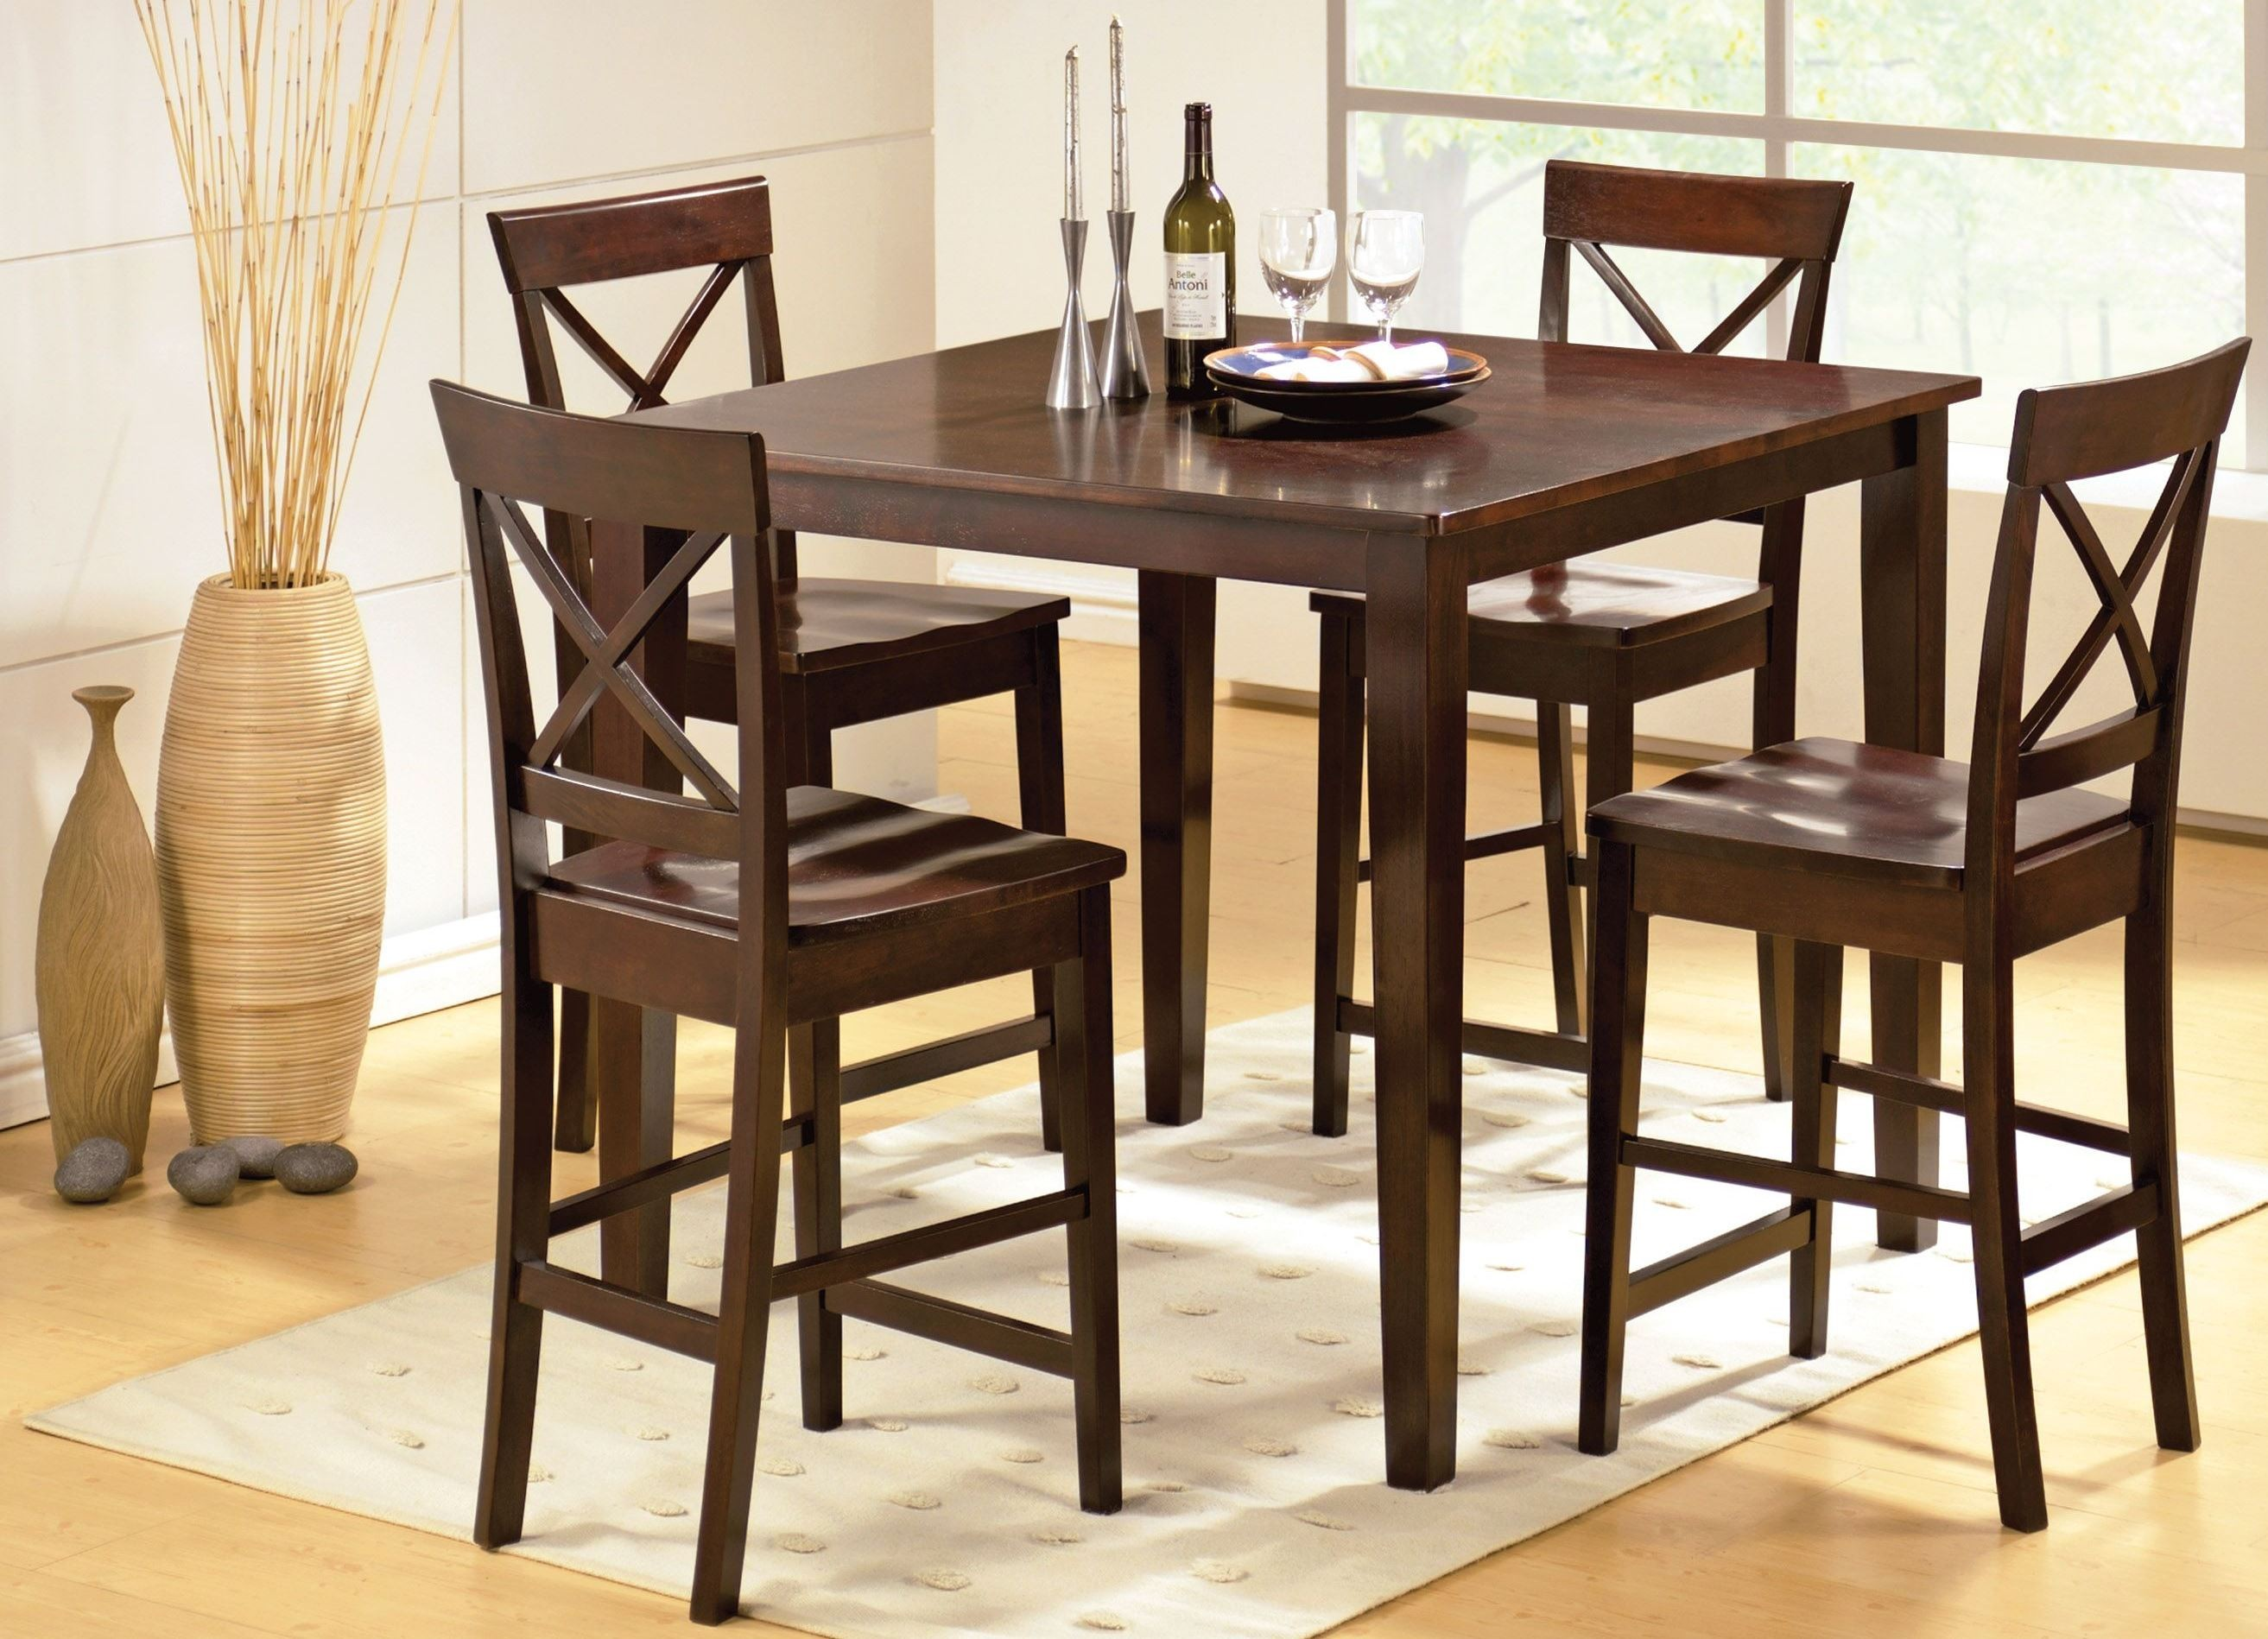 Cobalt Espresso 5 Piece Counter Height Dining Set from Steve Silver ...